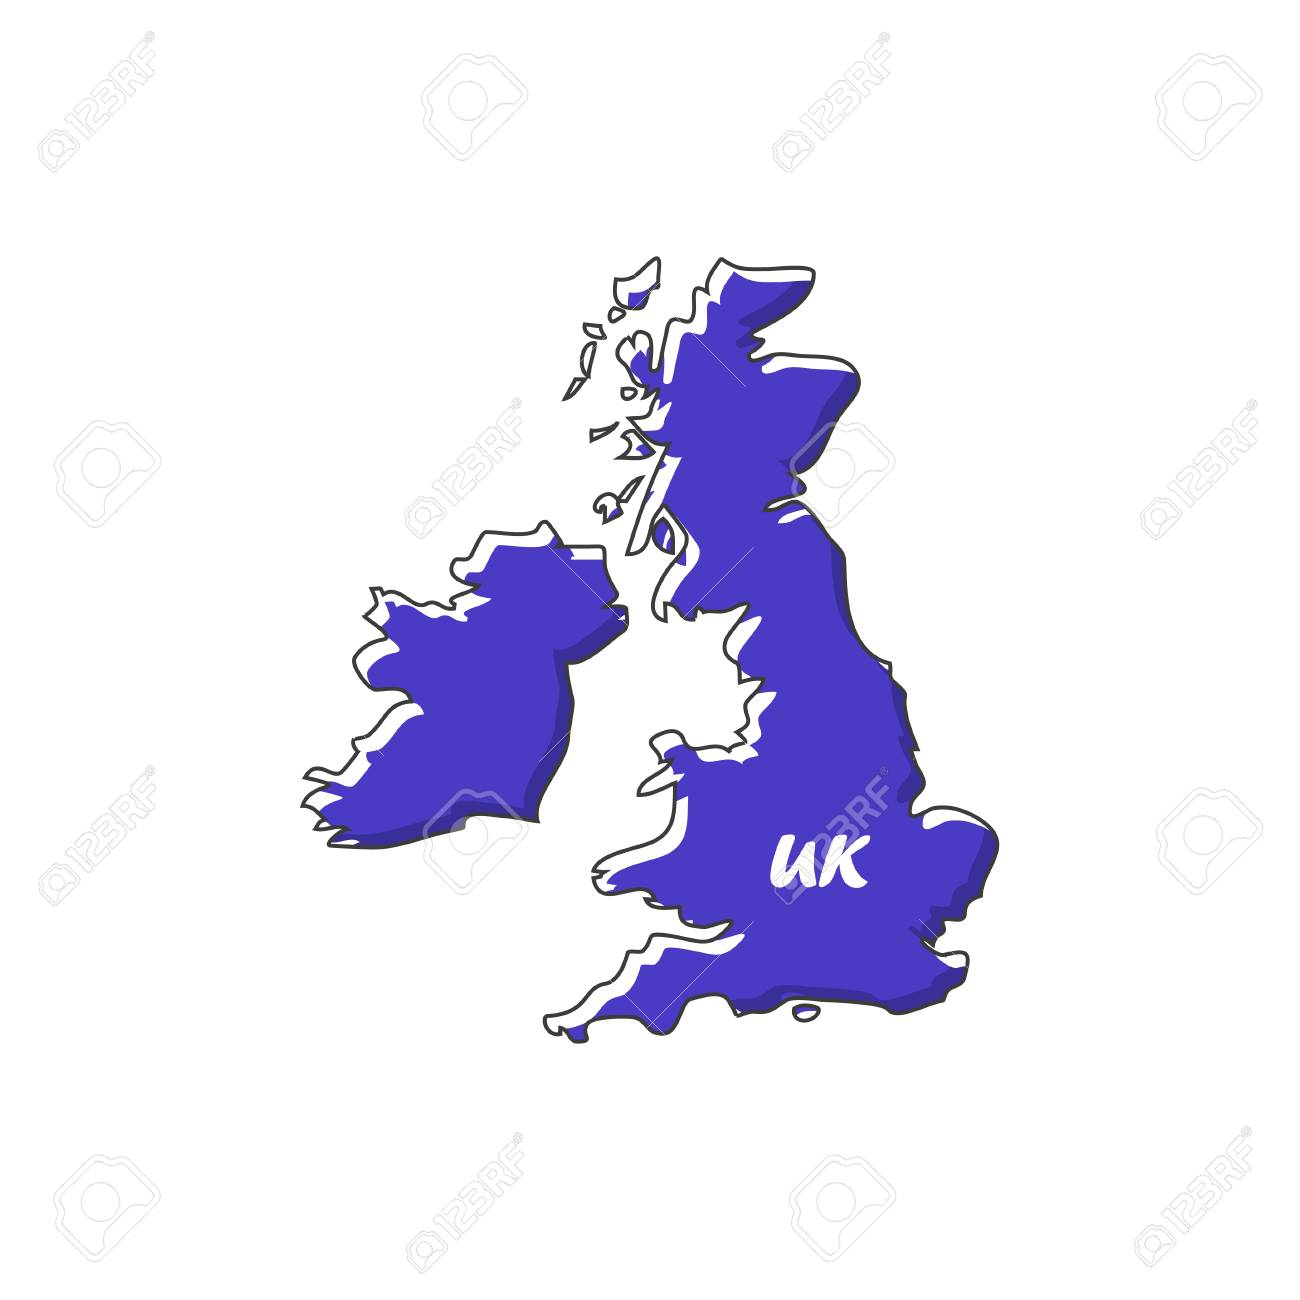 UK Map Icon In A Flat Design. Vector Illustration Lizenzfrei ... Uk Map on